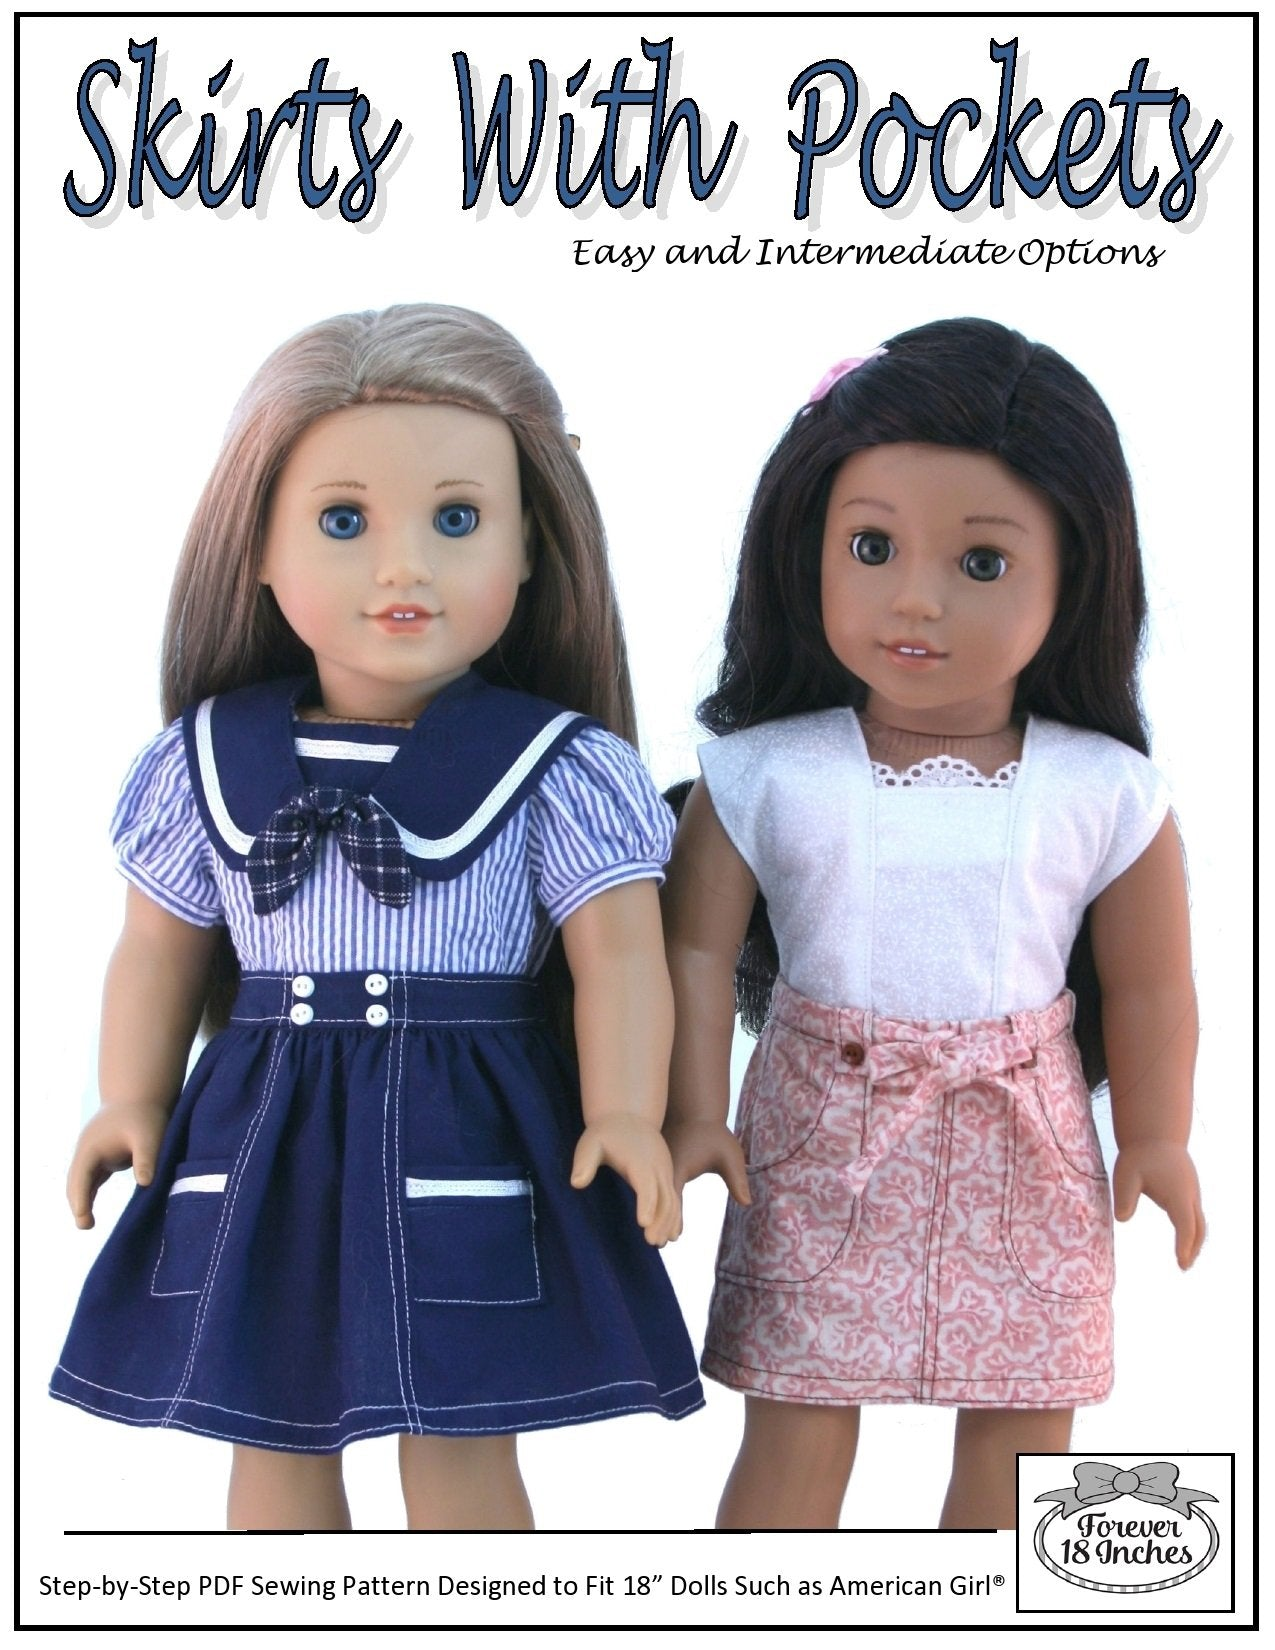 27d41e83072 pdf doll clothes sewing pattern Forever 18 Inches skirts with pockets  designed to fit 18 inch ...